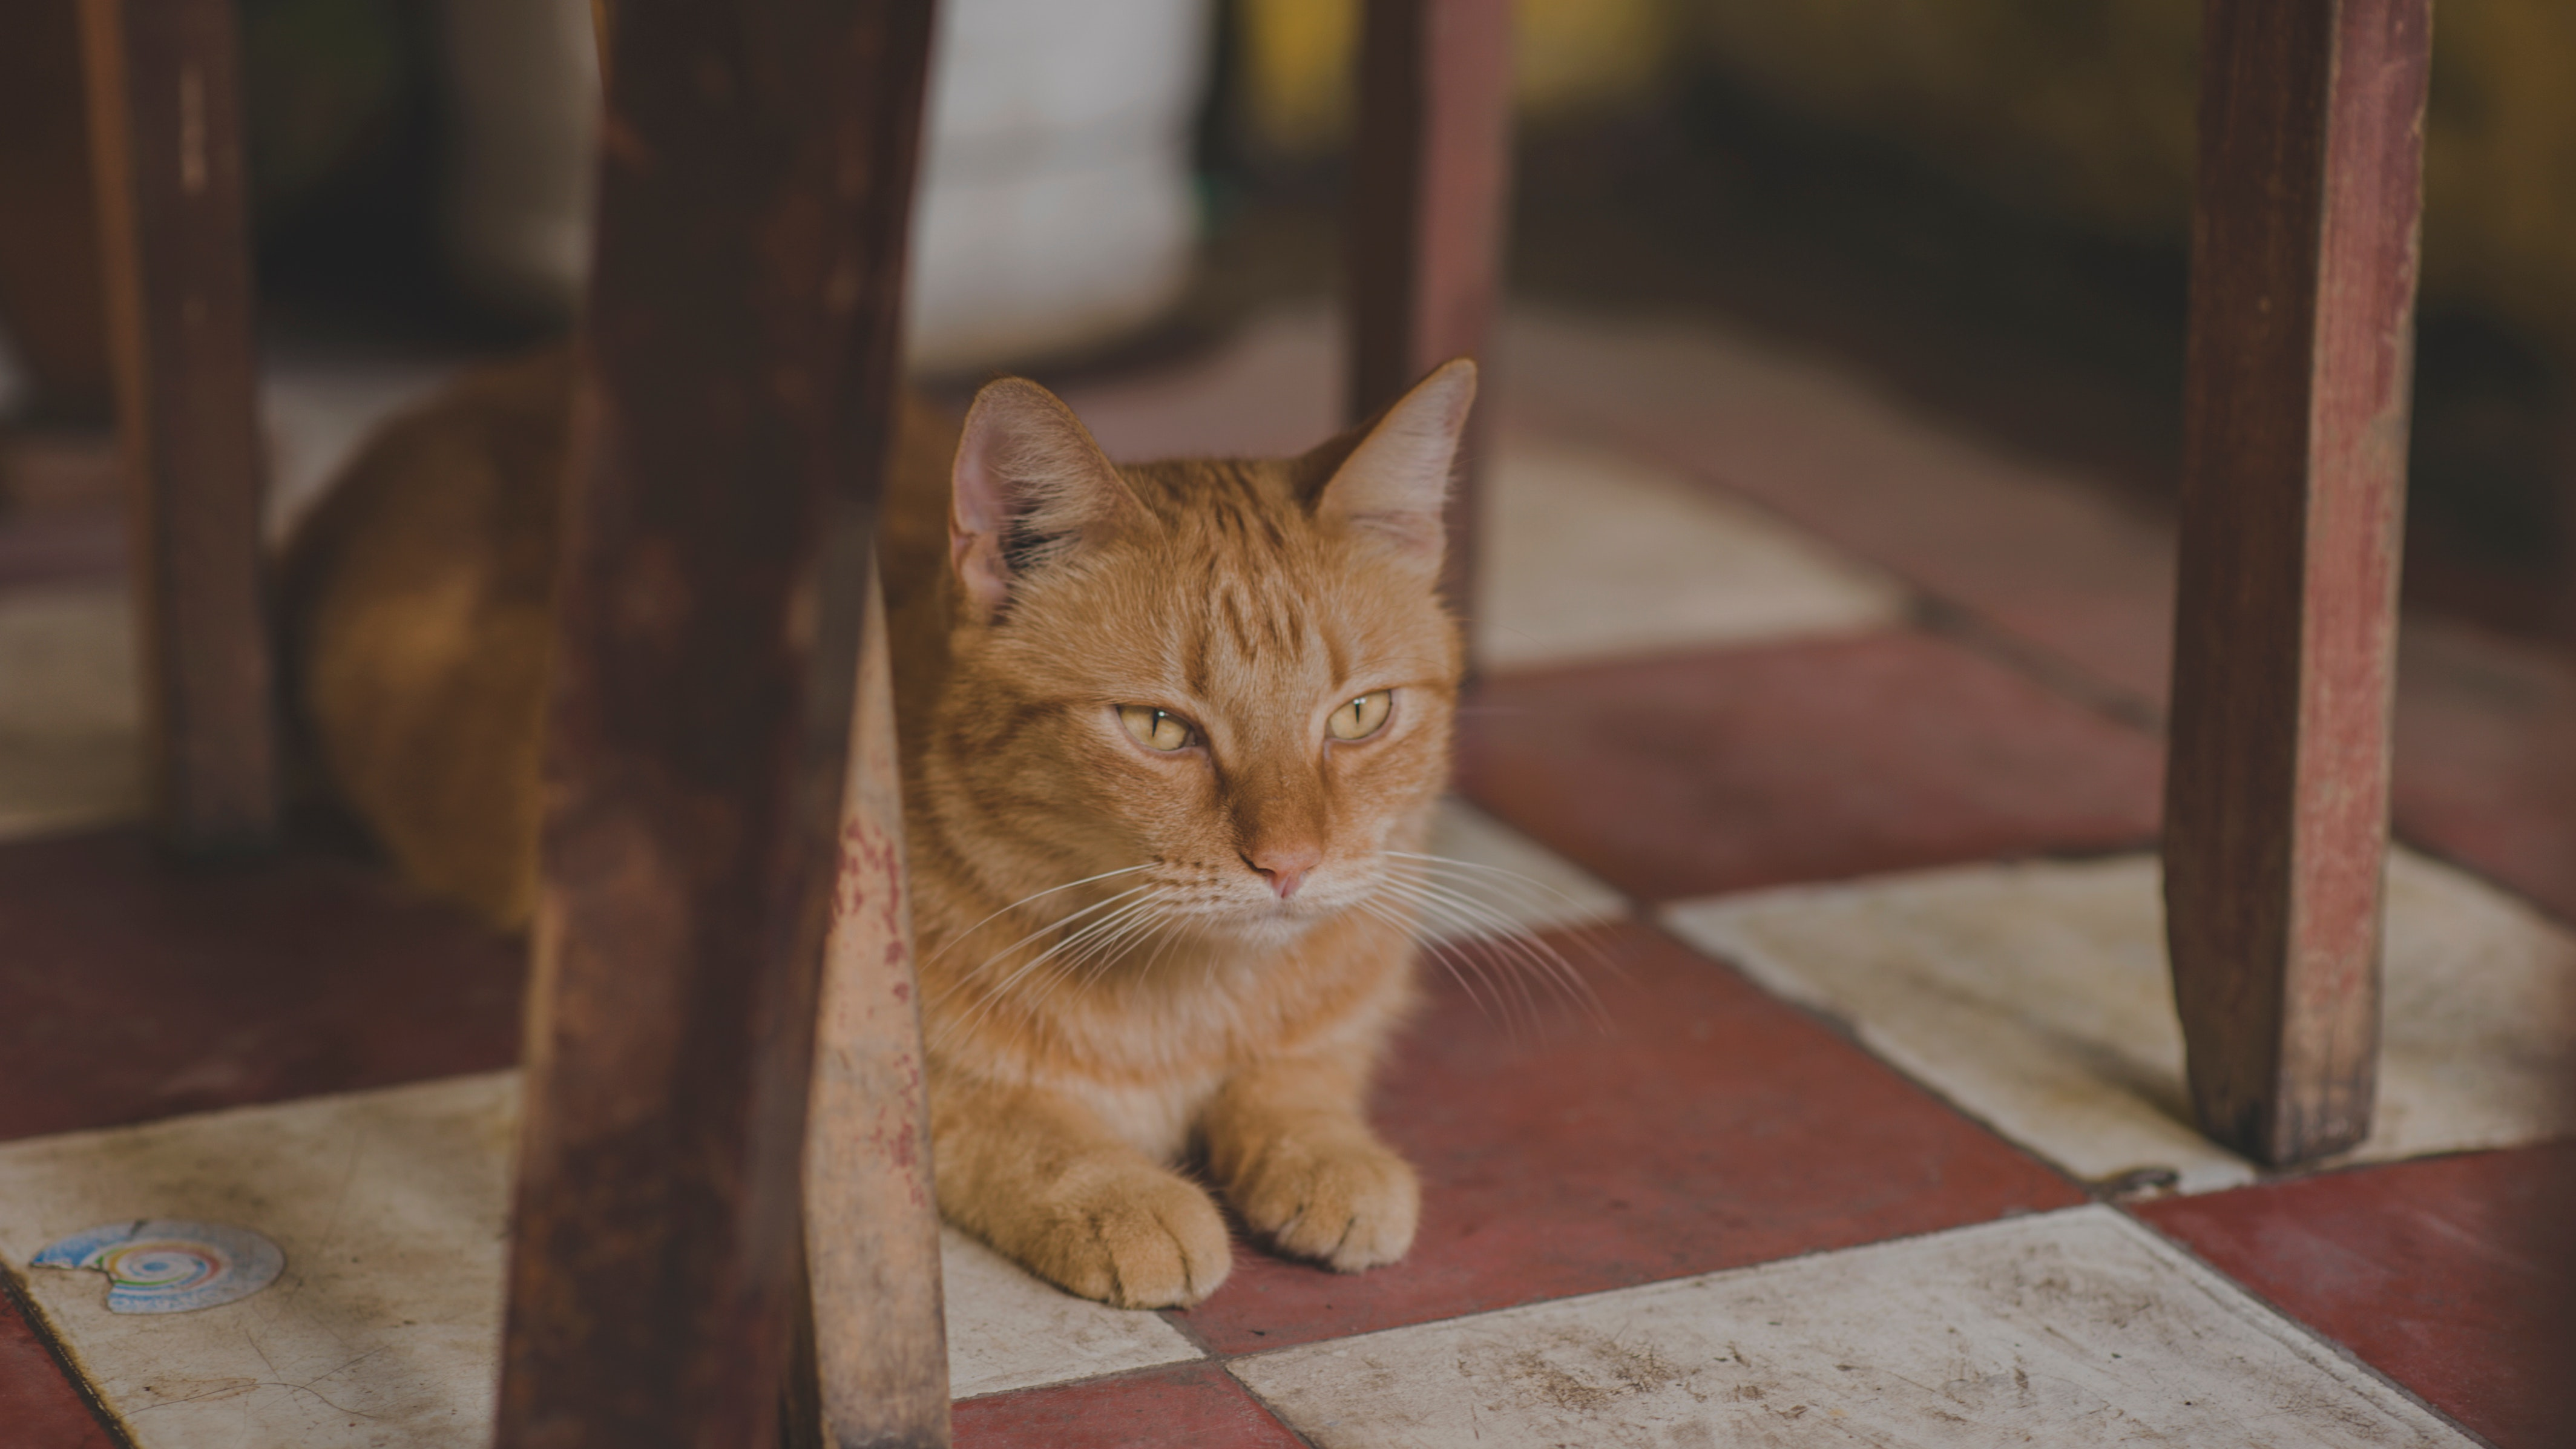 Photo of Orange Tabby Cat Under Chair, Animal, Fur, Whiskers, Tabby, HQ Photo